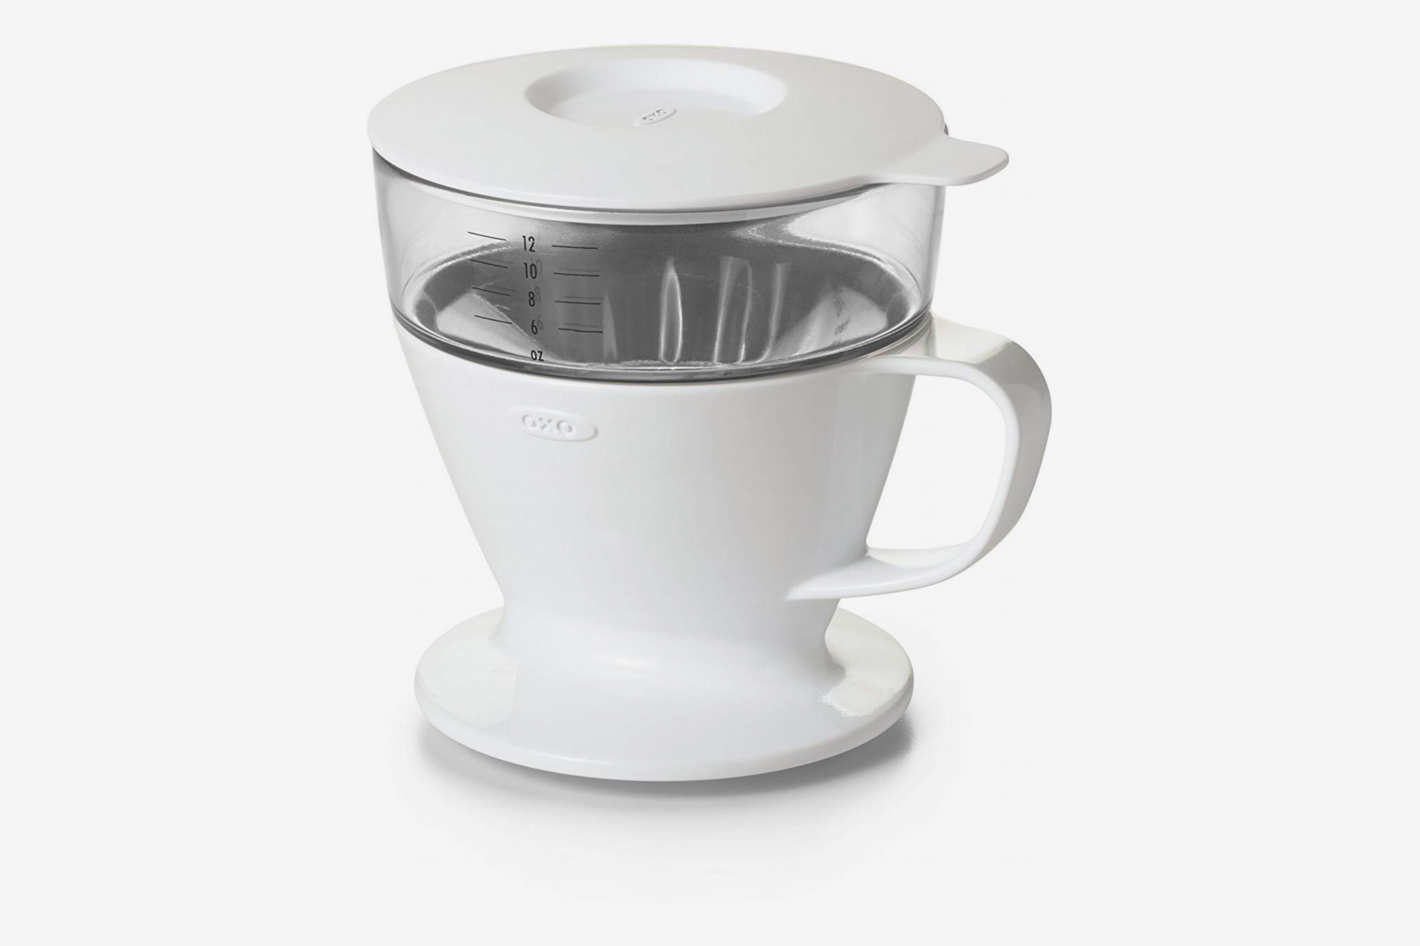 OXO Good Grips Single Serve Pour Over Coffee Dripper With Auto Drip Water Tank